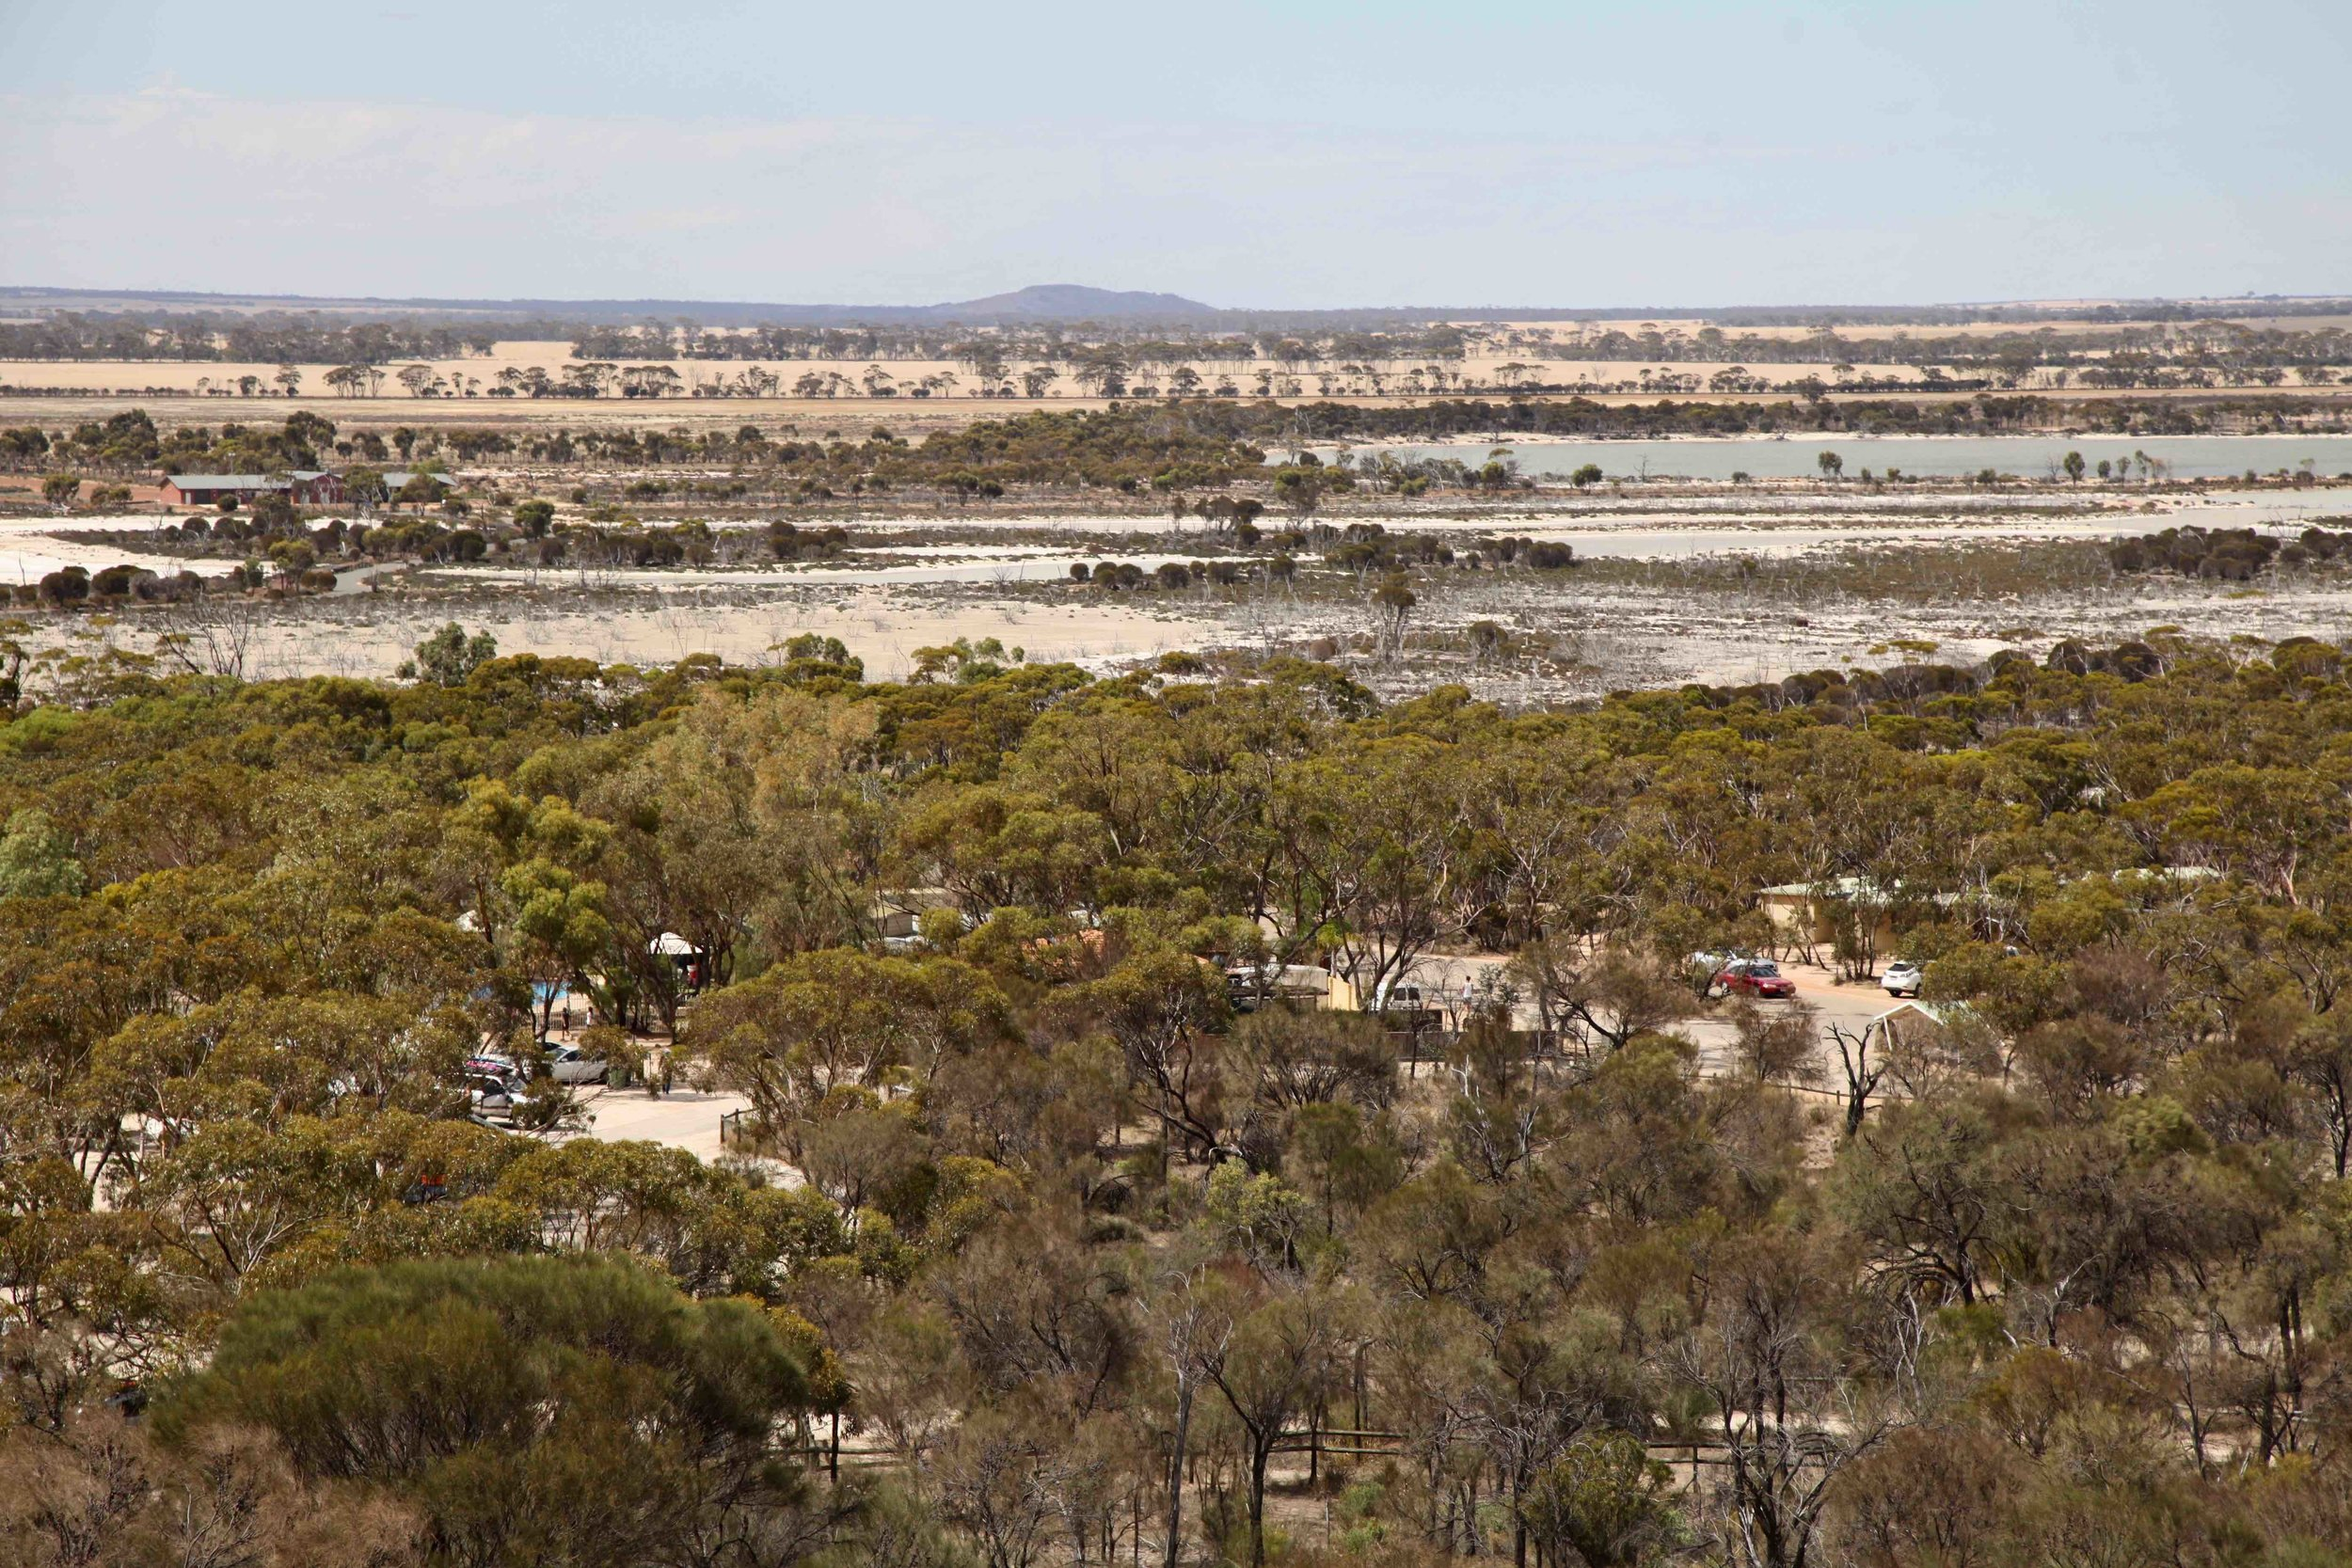 Hyden is located about 4 hours drive west of Perth and is home to Hyden Rock and Wave Rock.